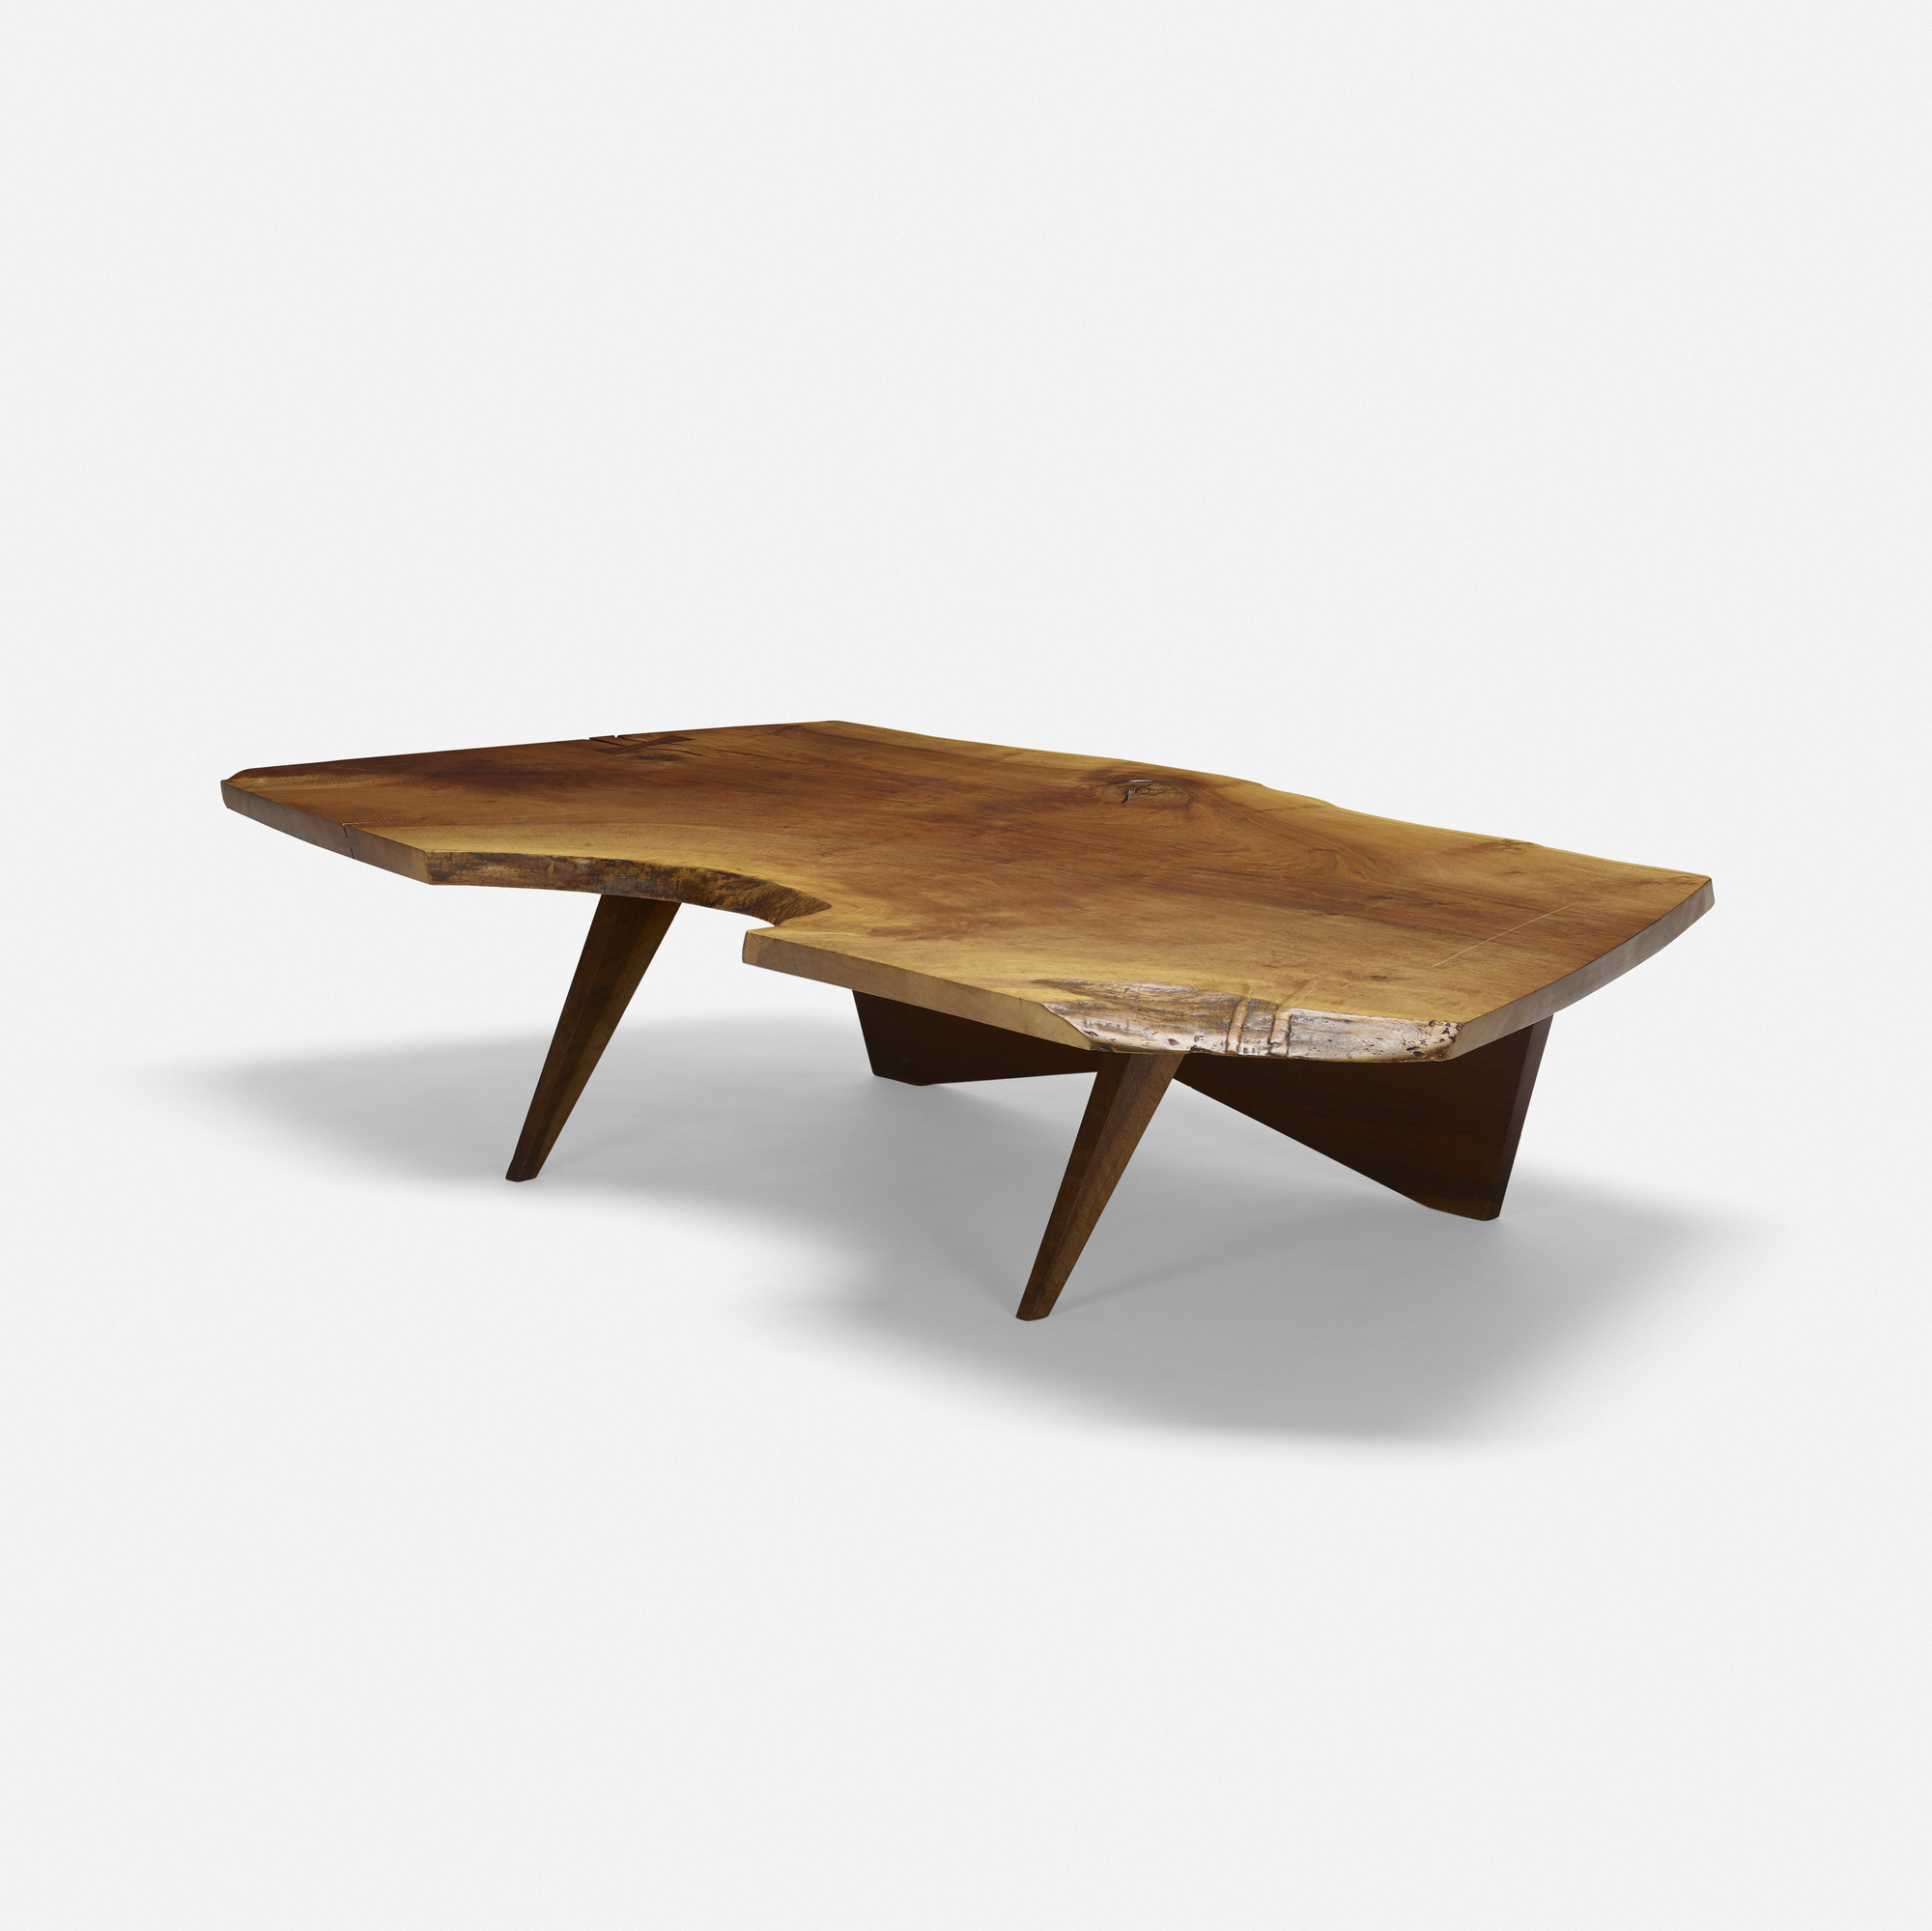 121 GEORGE NAKASHIMA Slab coffee table Design 23 March 2017